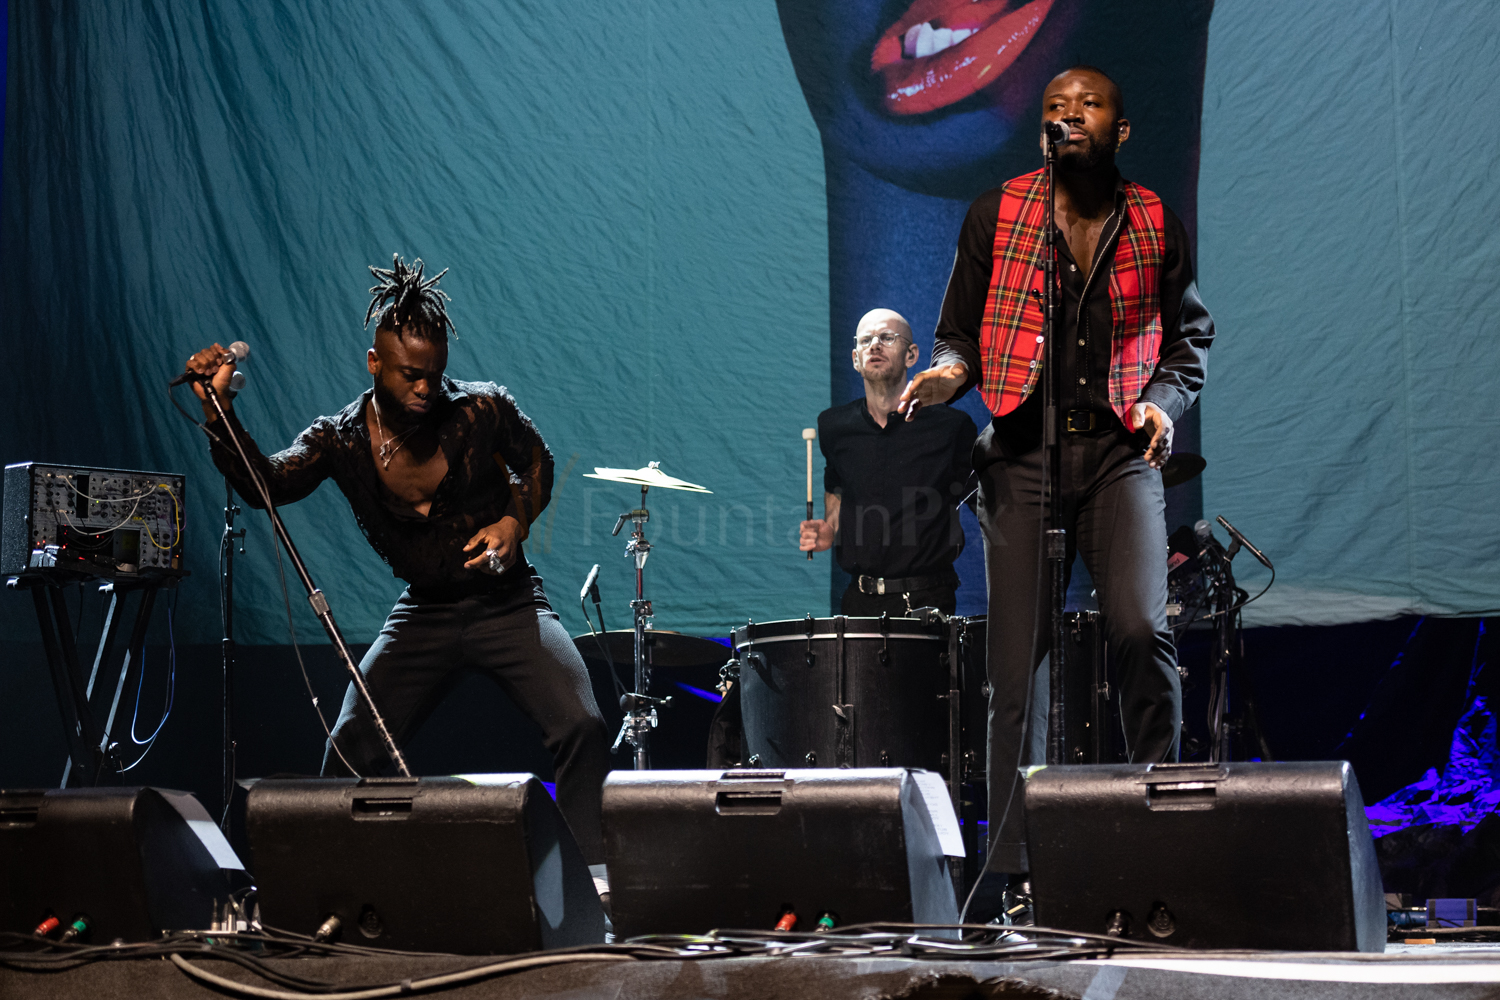 7 Young Fathers